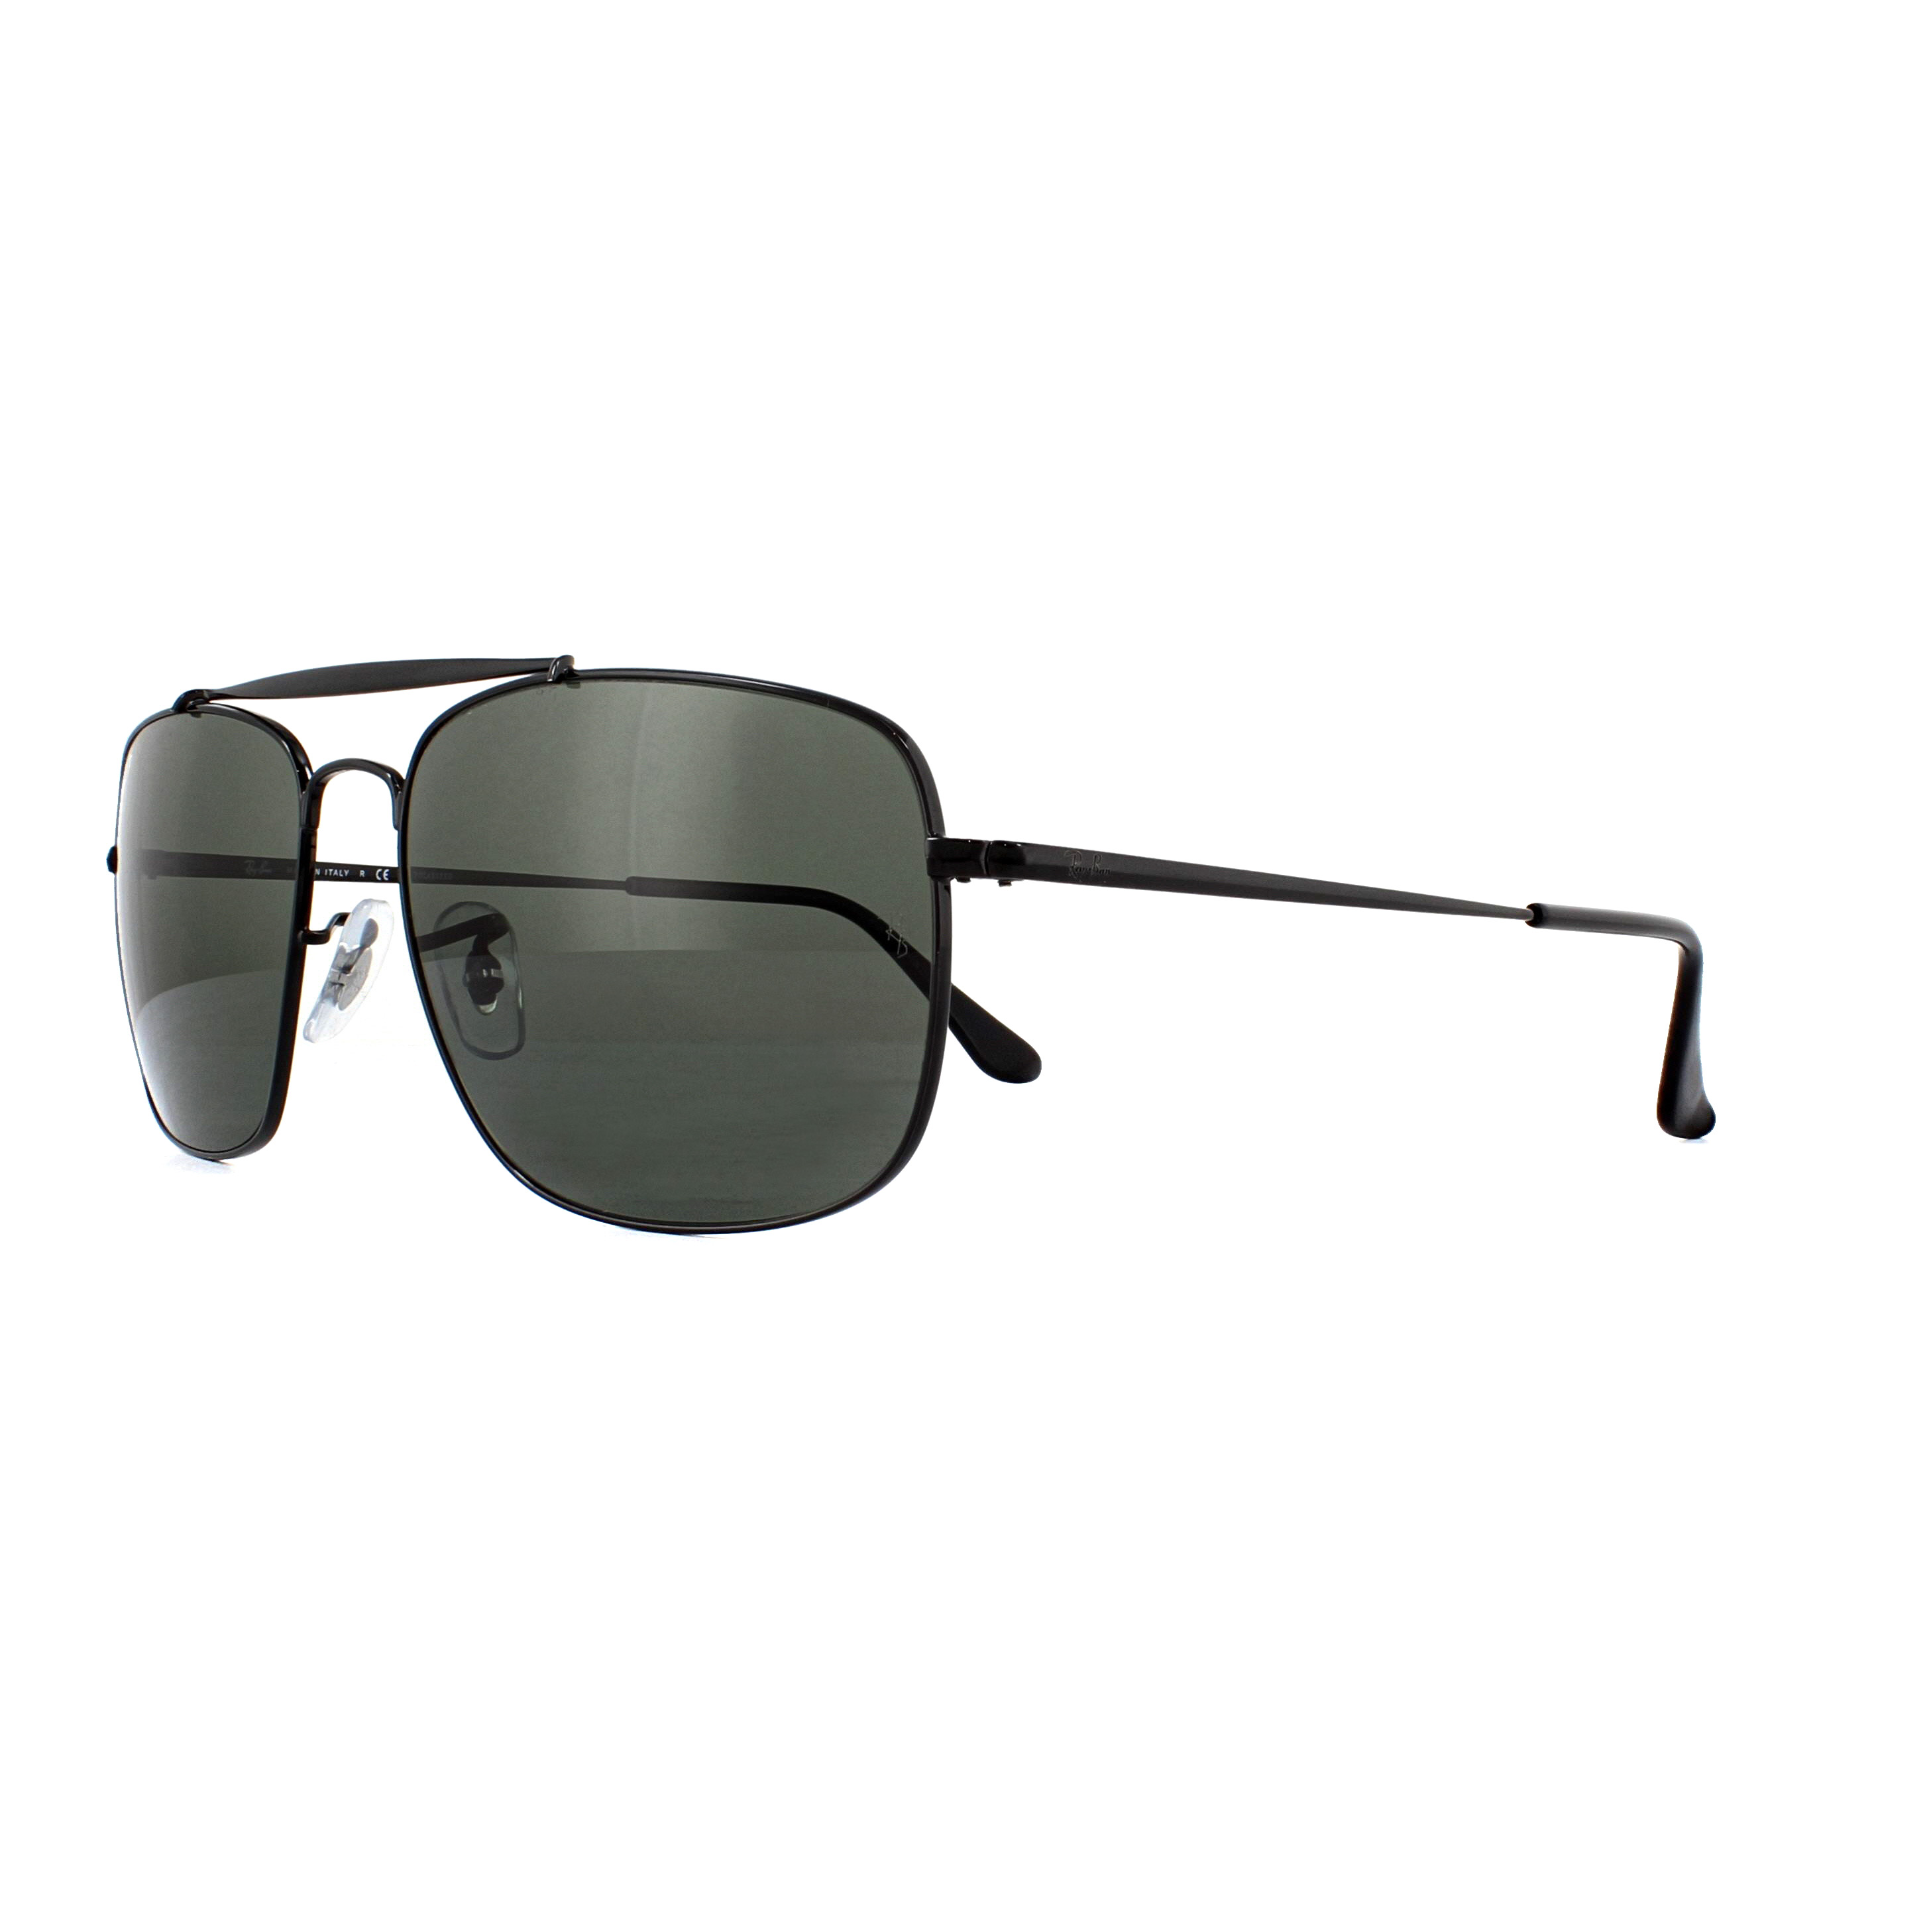 6bb1219a3cd4 Sentinel Ray-Ban Sunglasses The Colonel RB3560 002 58 Black Green Polarized